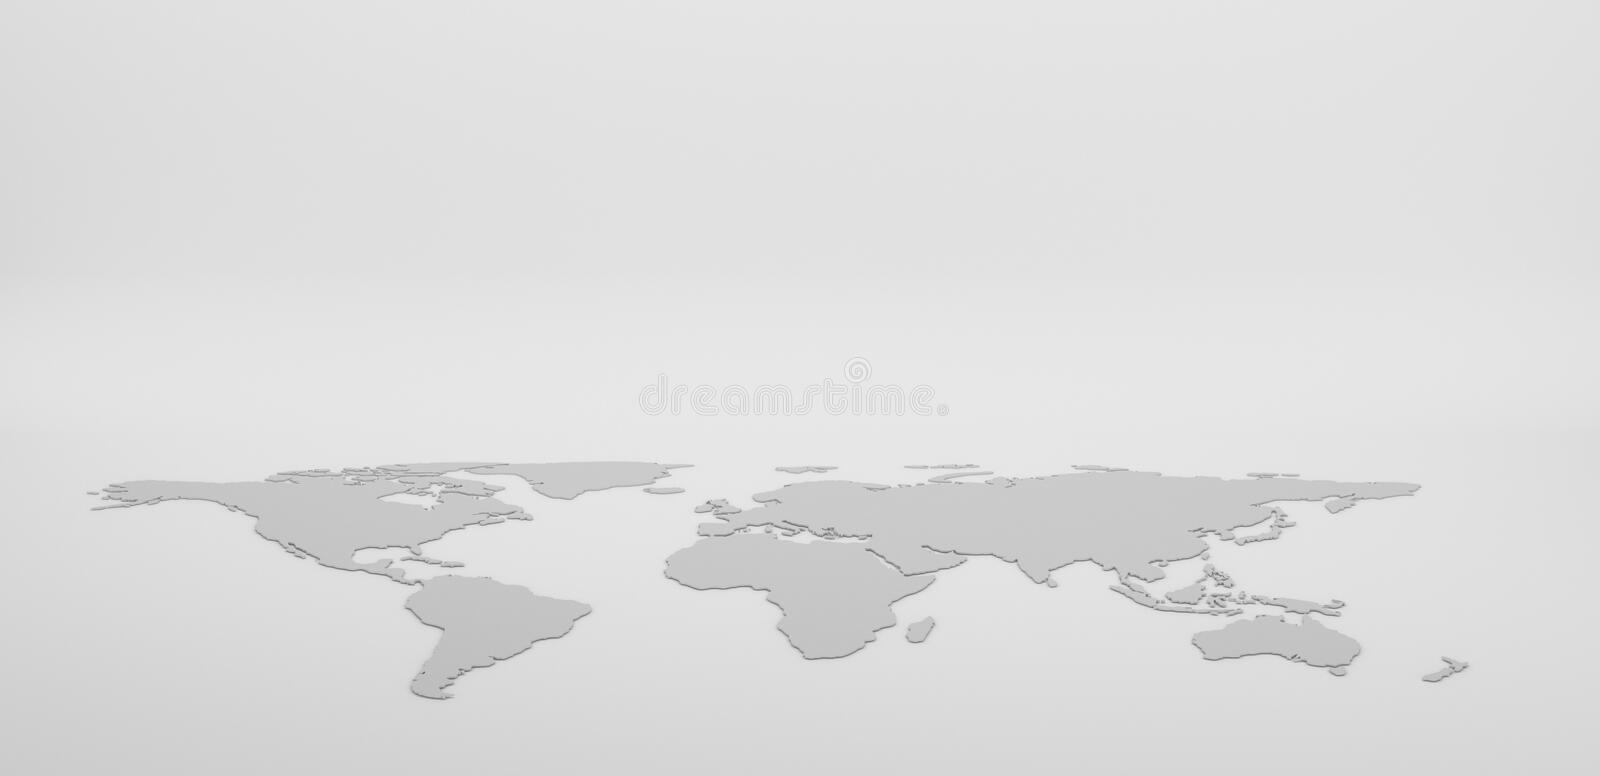 Blank Grey World map isolated on white background. infographics, illustration vector illustration